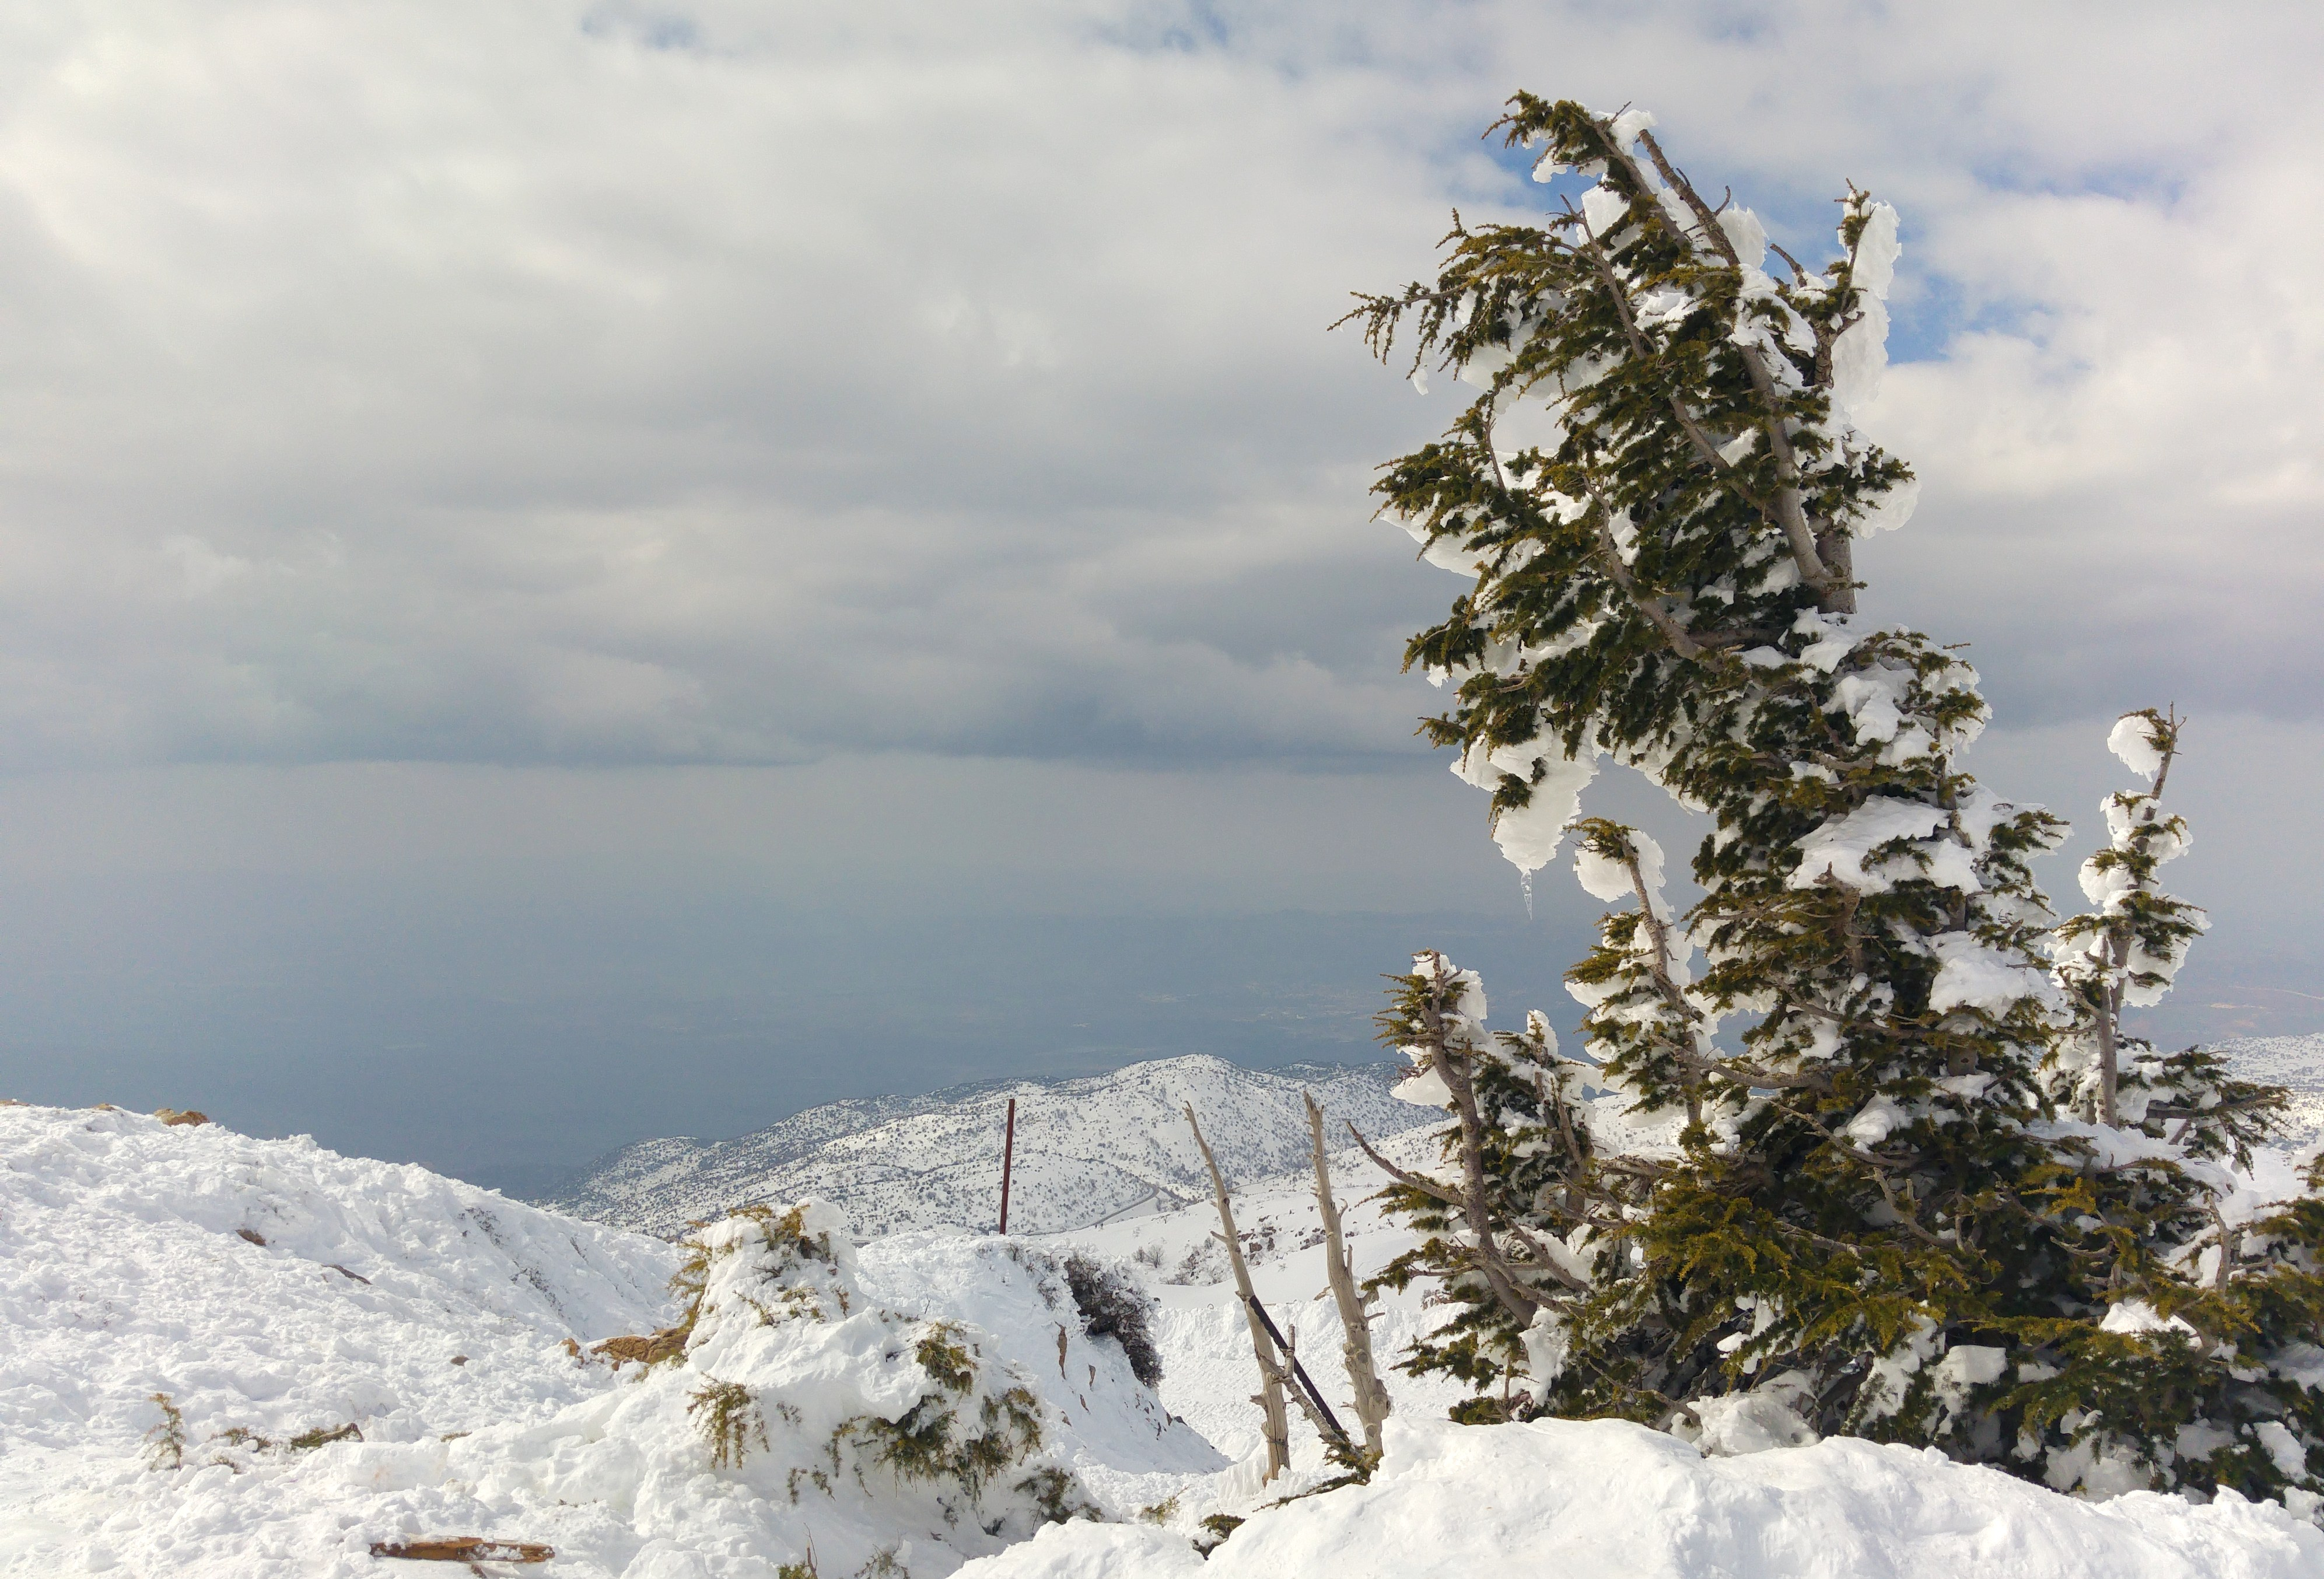 Nothing like an icy pine tree to symbolise winter